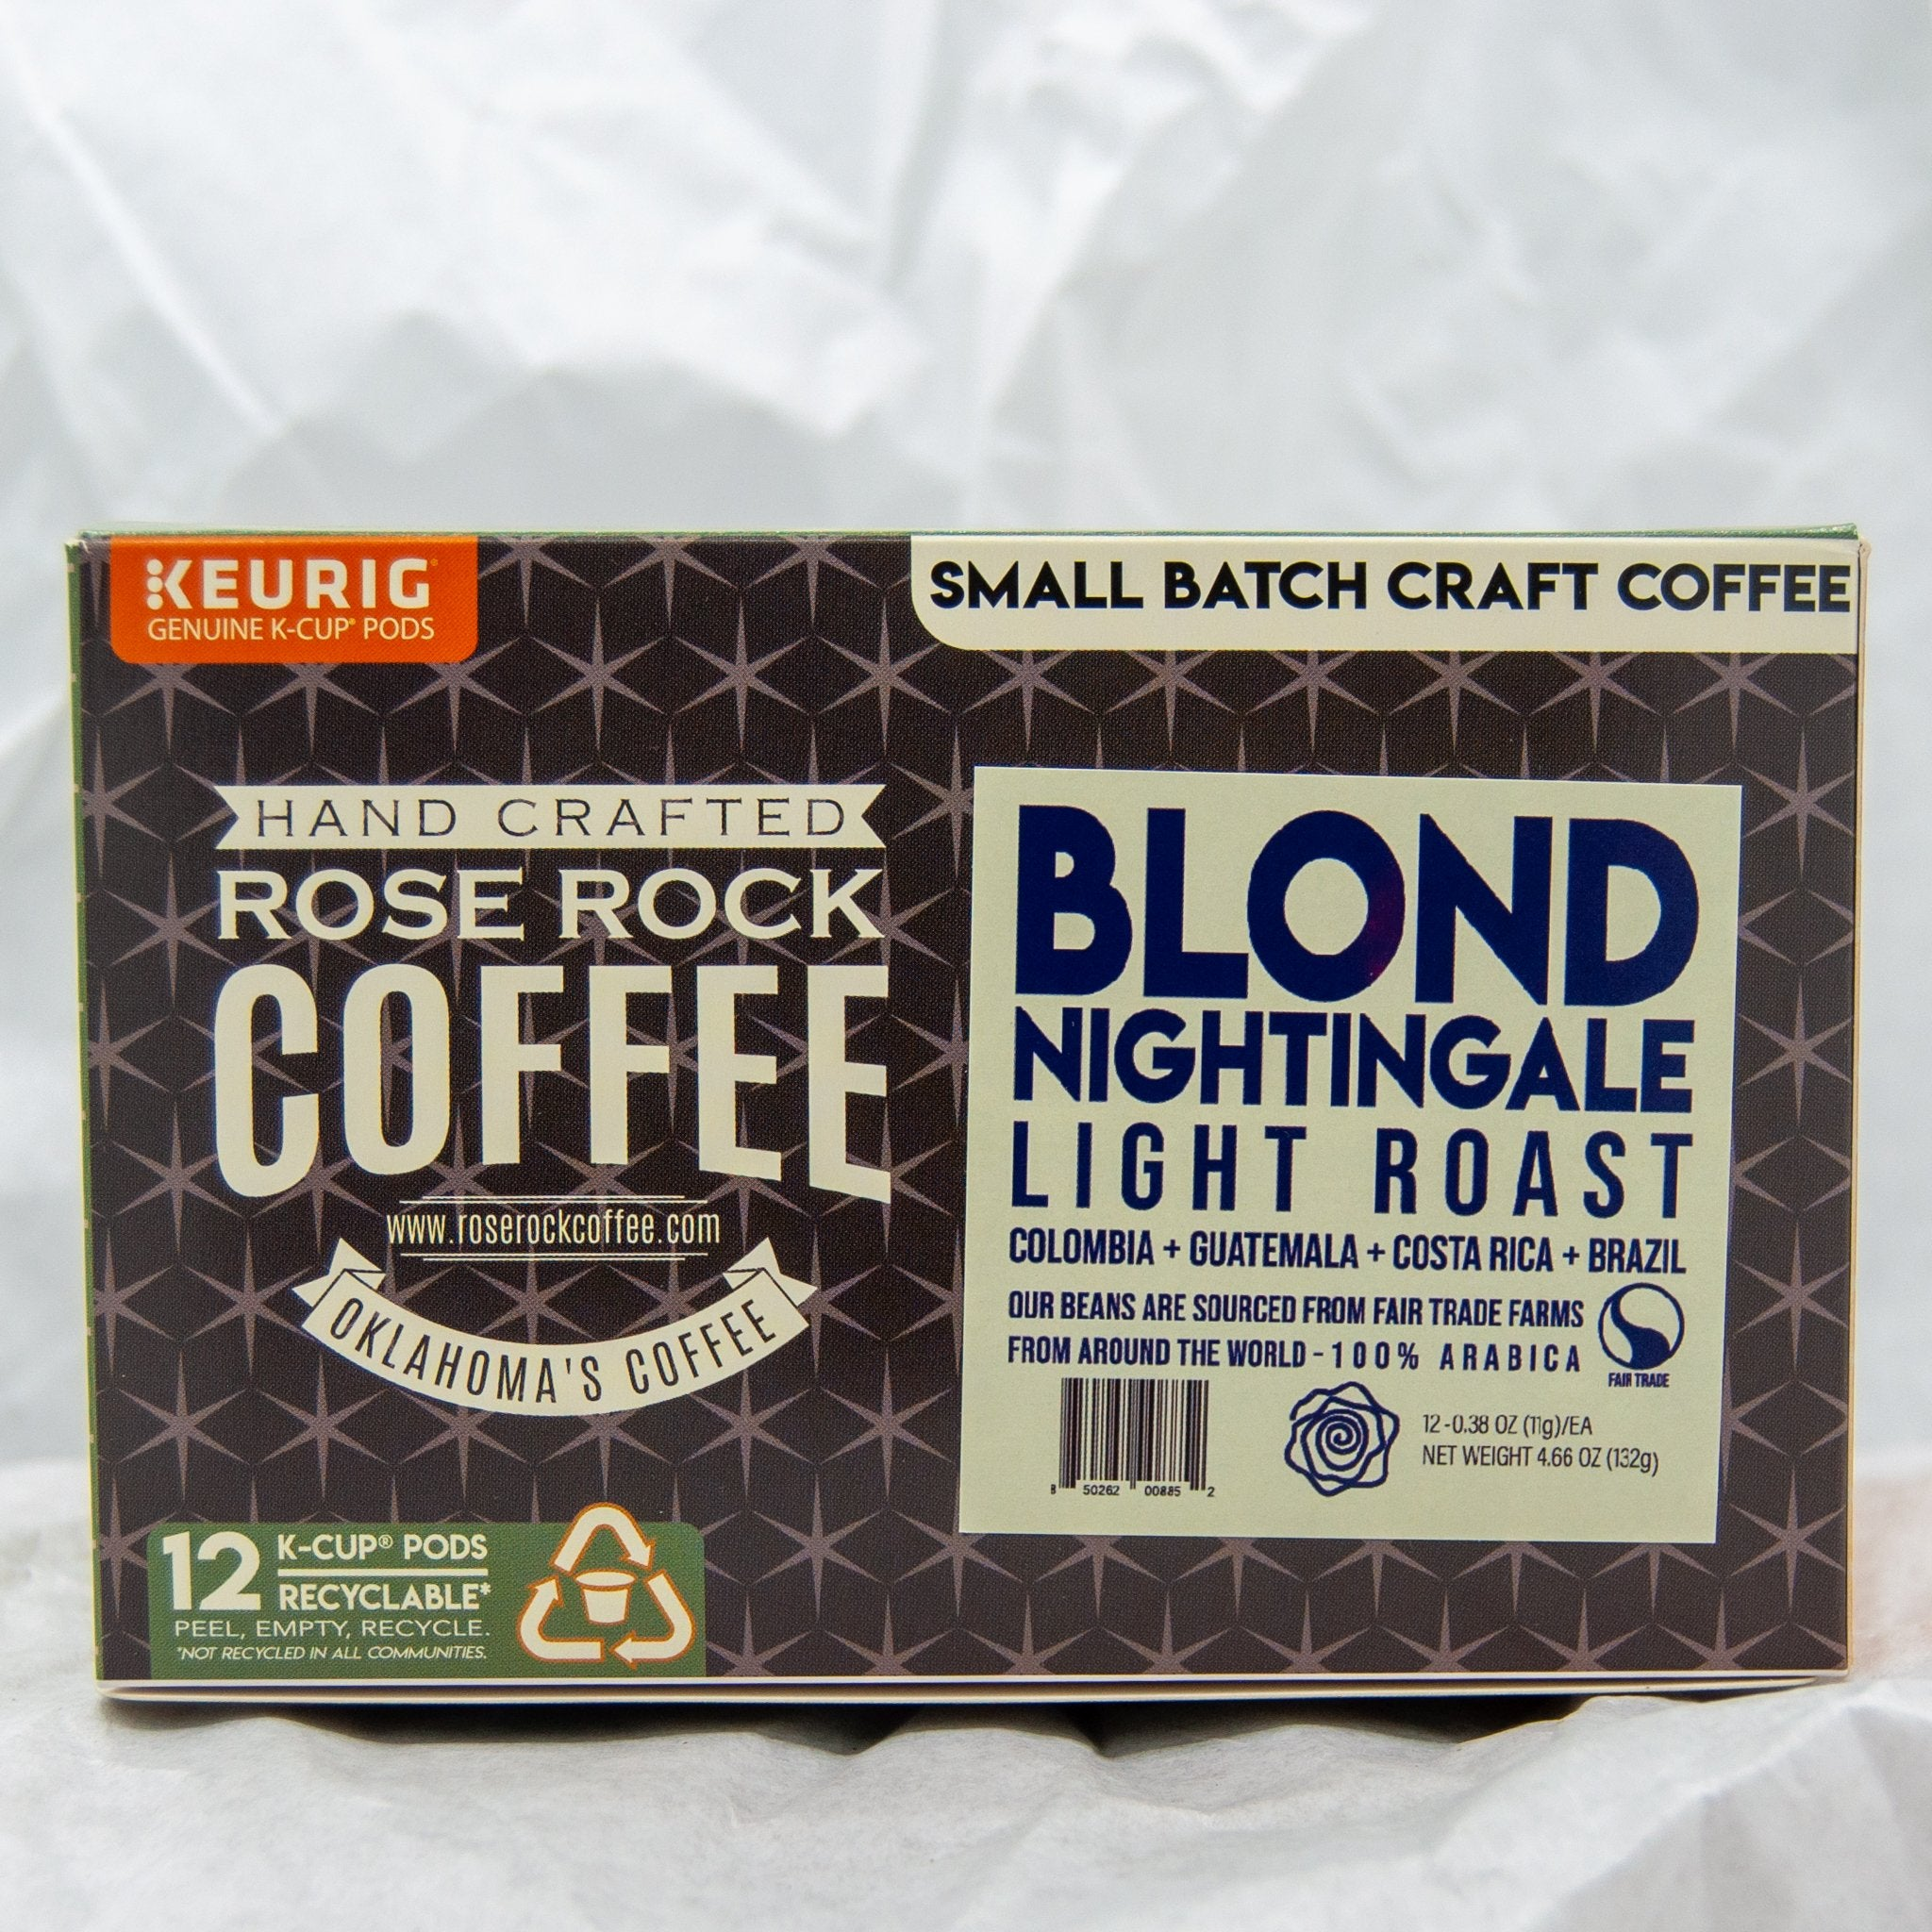 Rose Rock K Cup Blond Nightingale